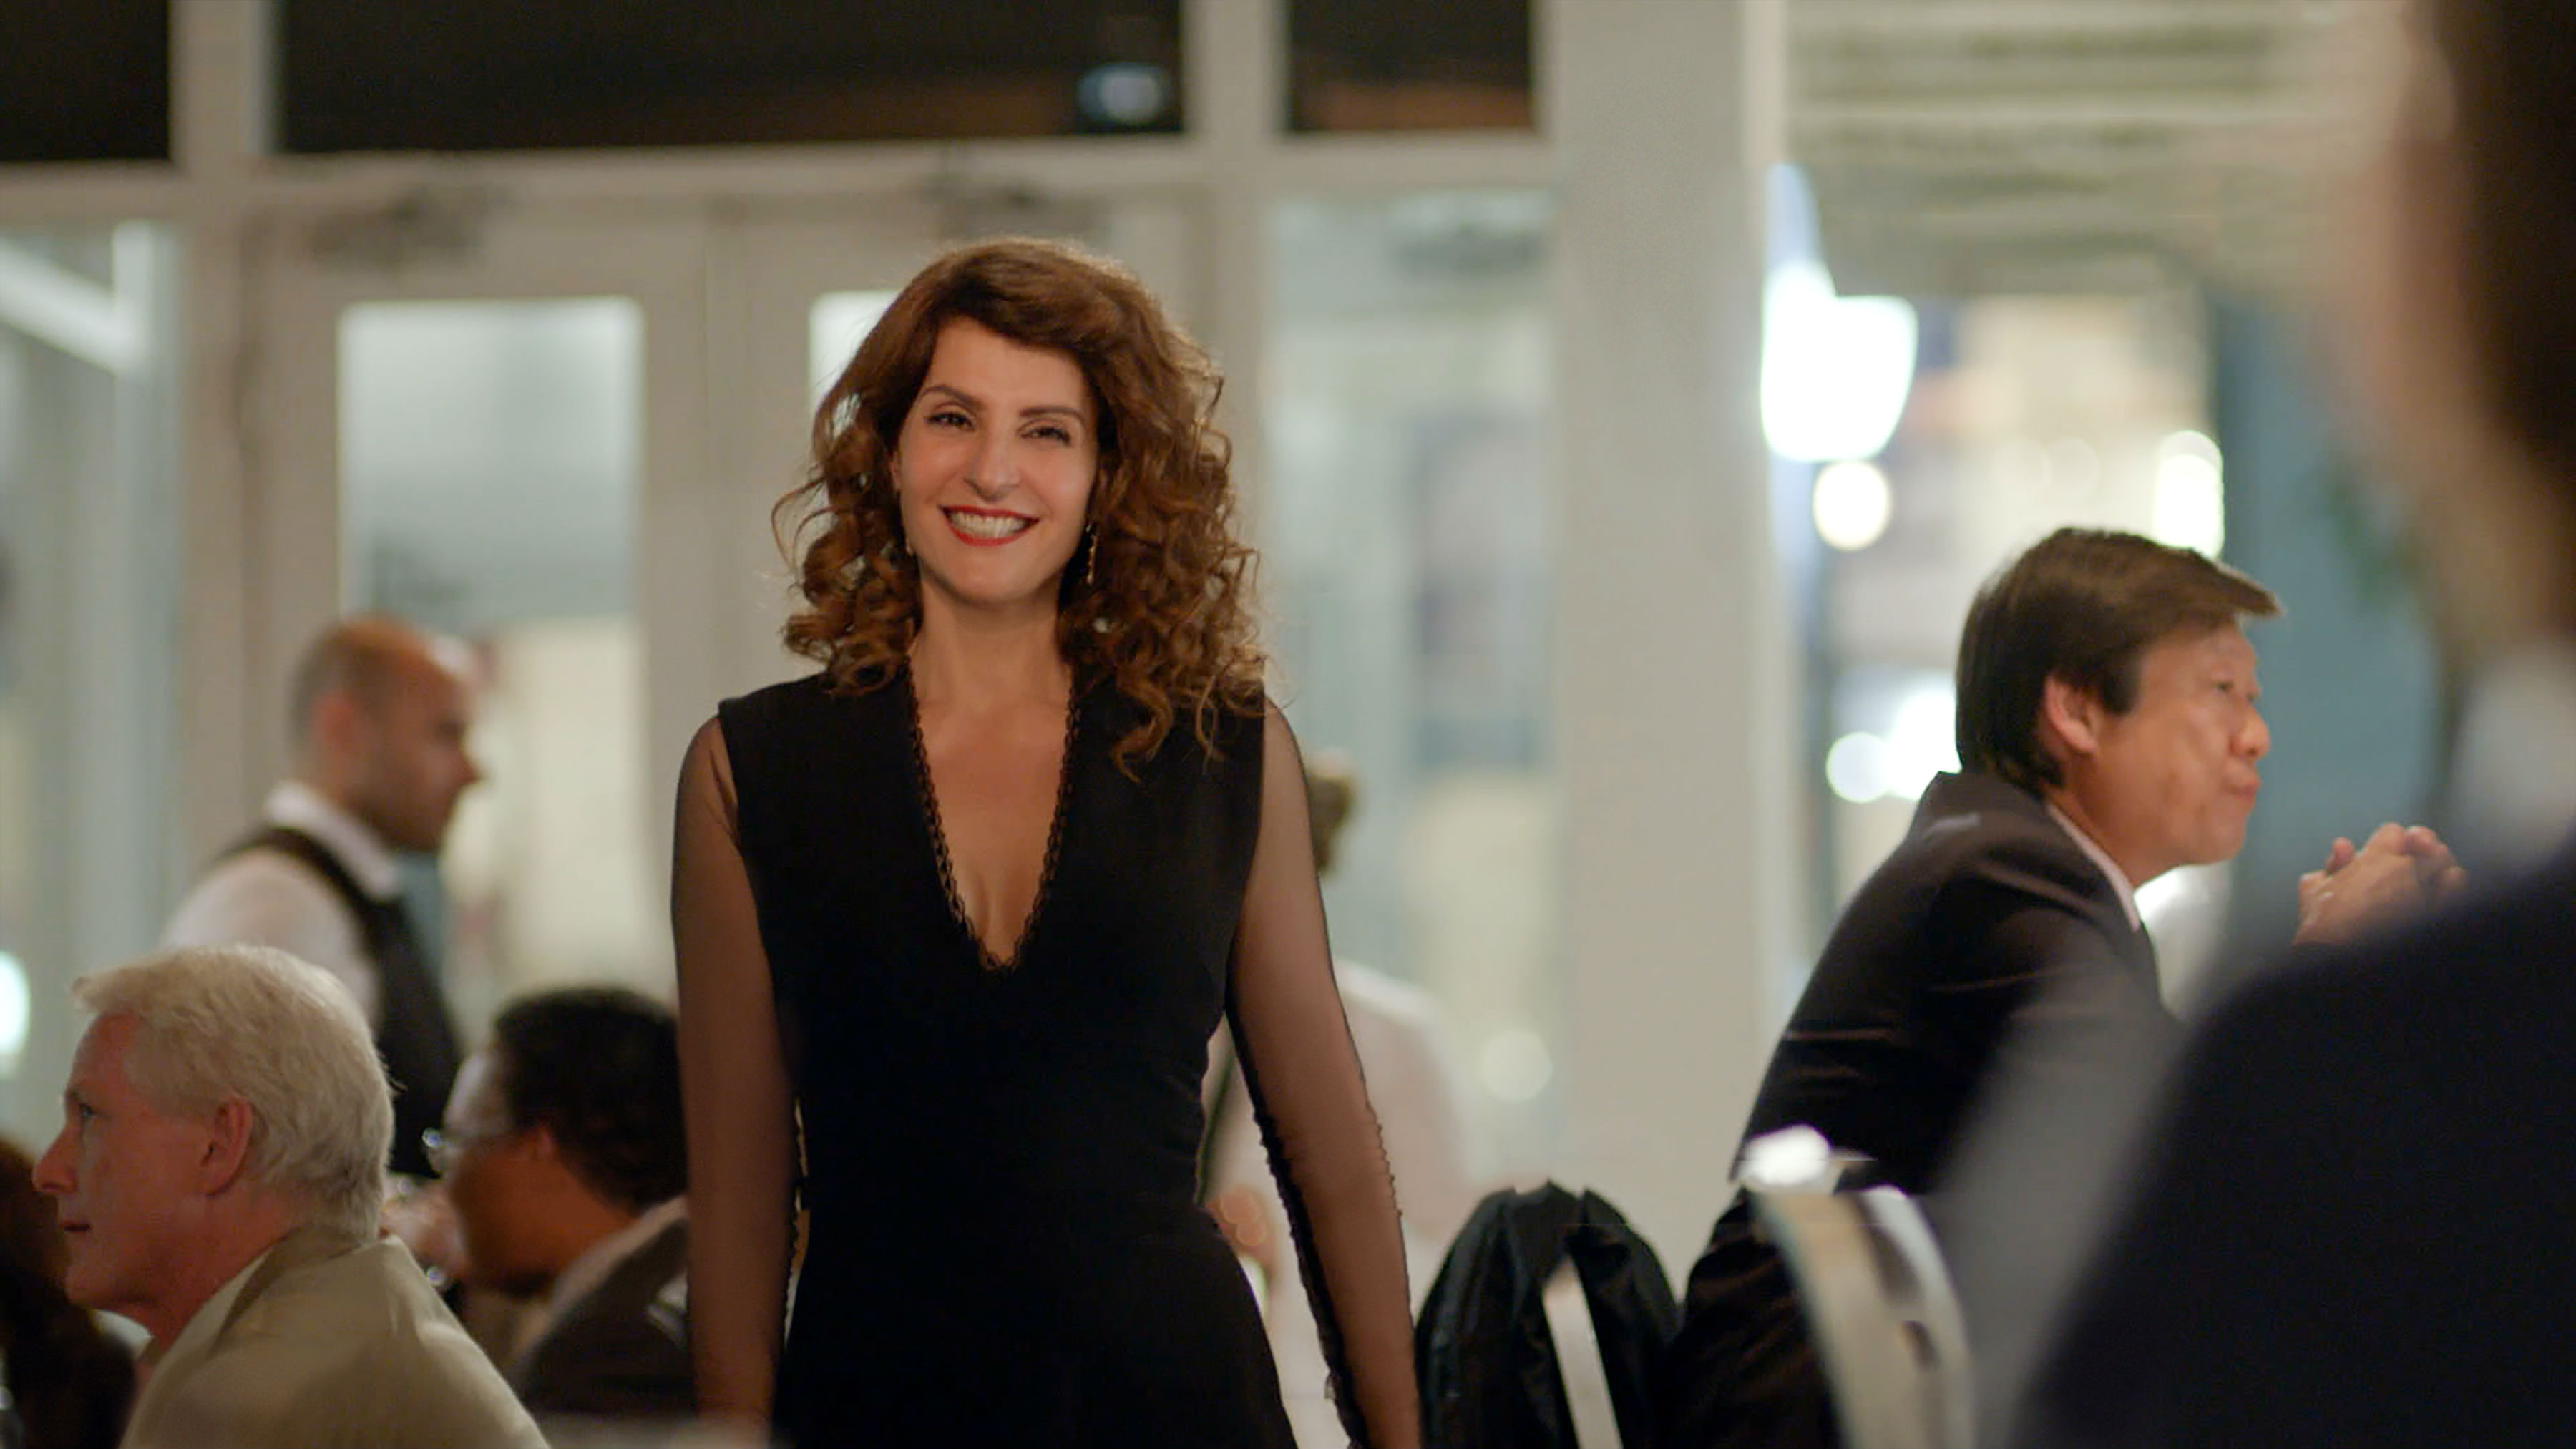 my big fat greek wedding essay Yes, you've had it and are ready for a big change join the dream salon and get my free find your spark e-course: then listen to this: your free call.